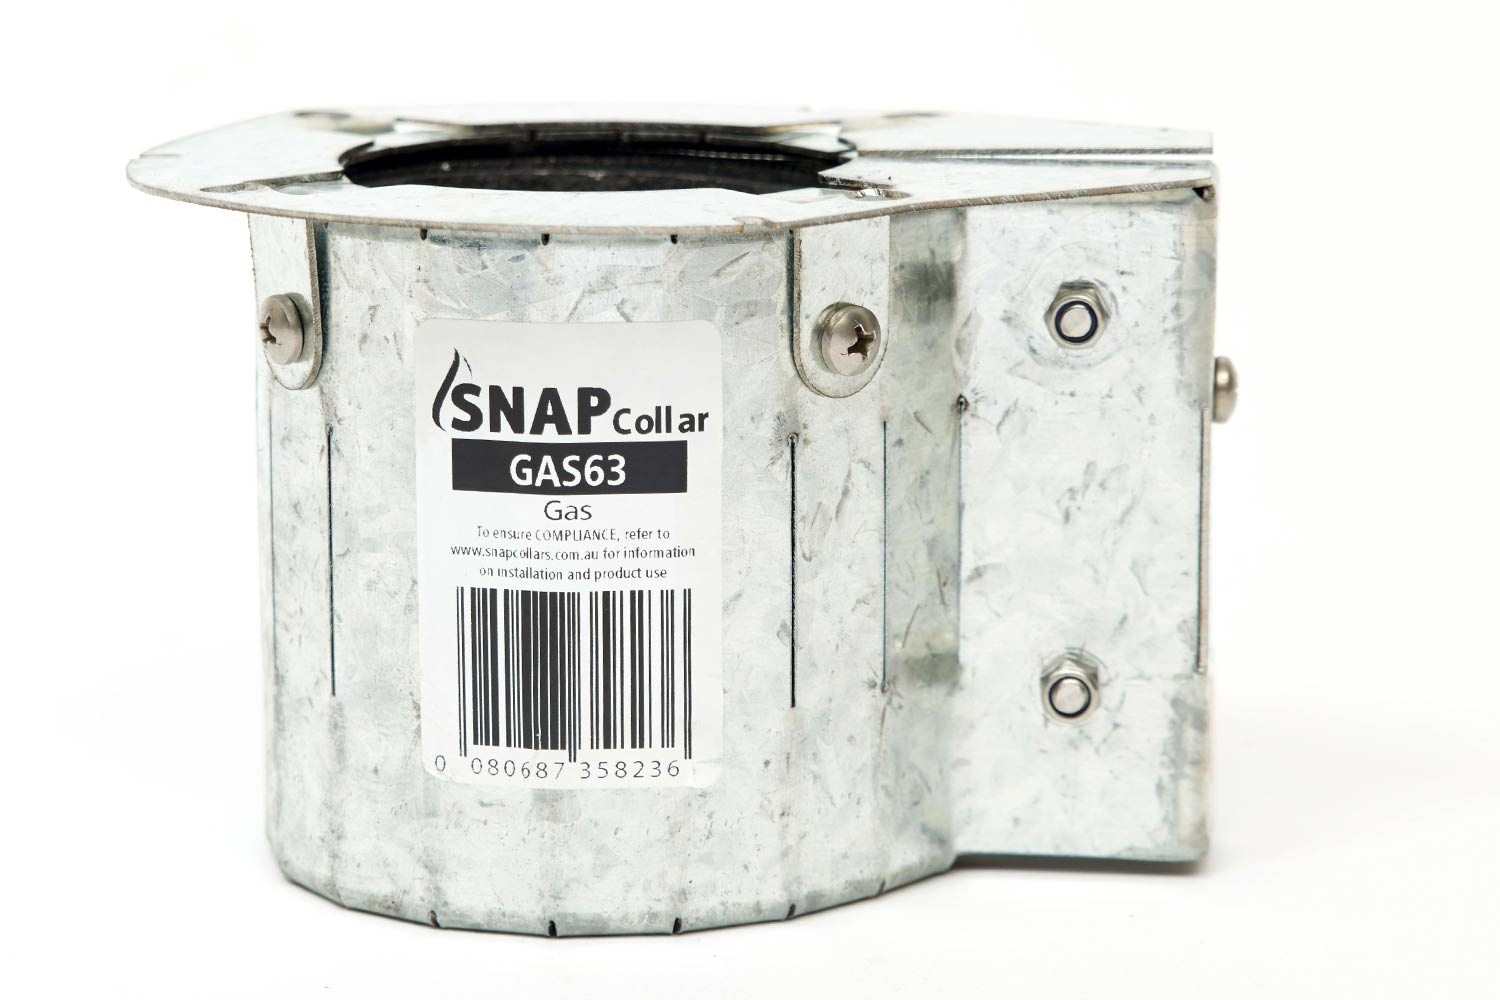 Snap Fire Collars Gas63